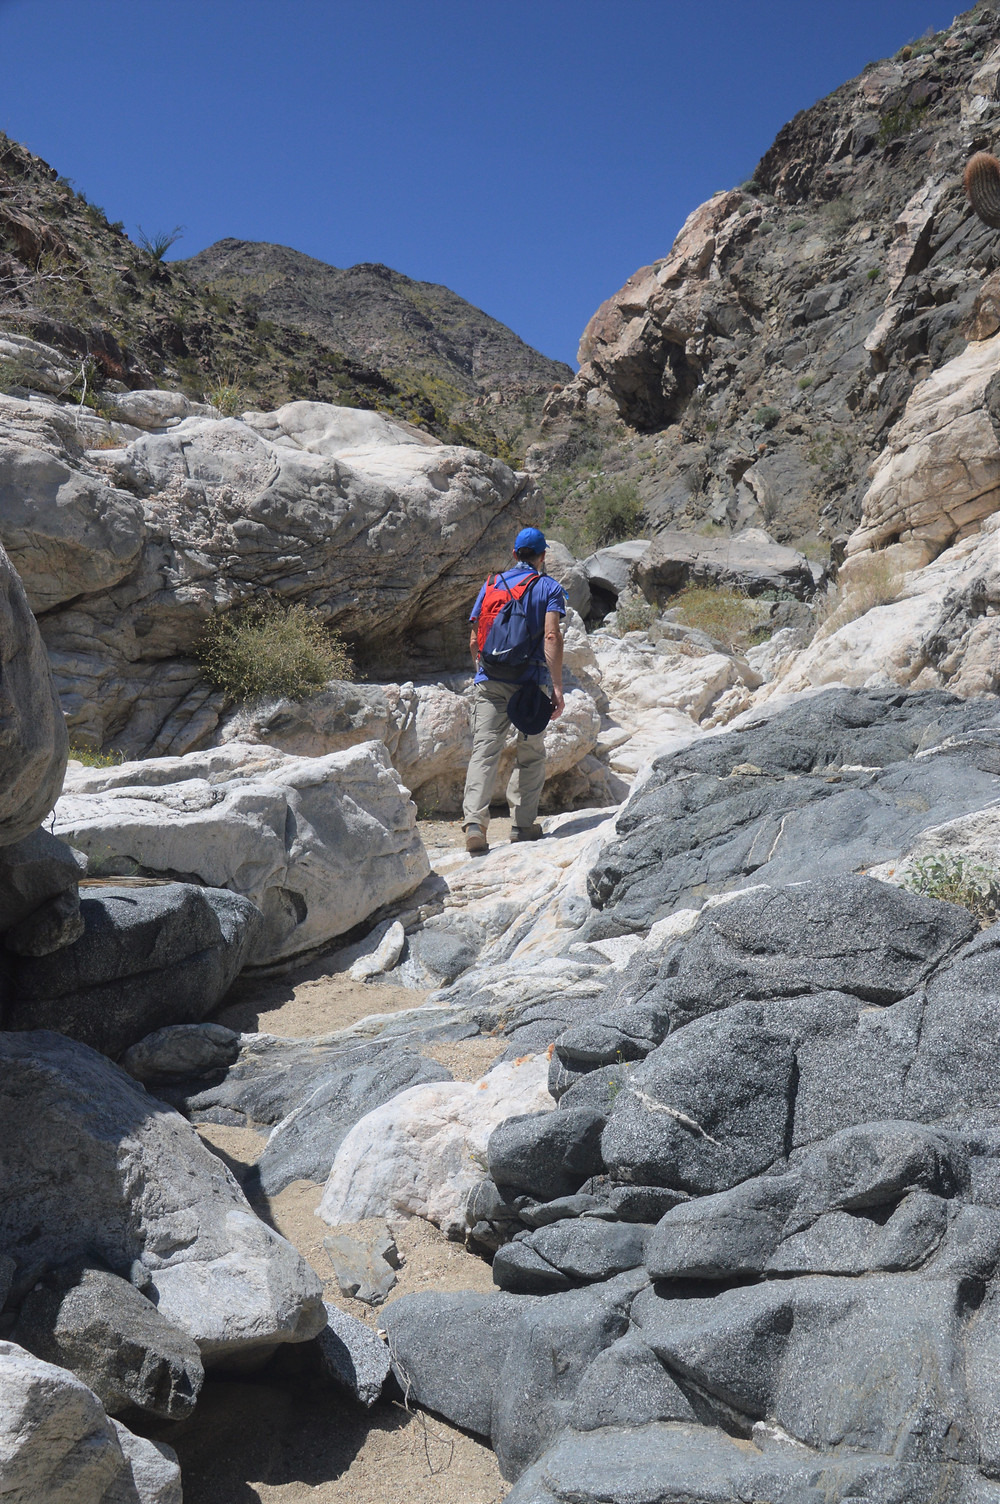 Marble dykes in the Lost Canyon trail in Santa Rosa Mountains